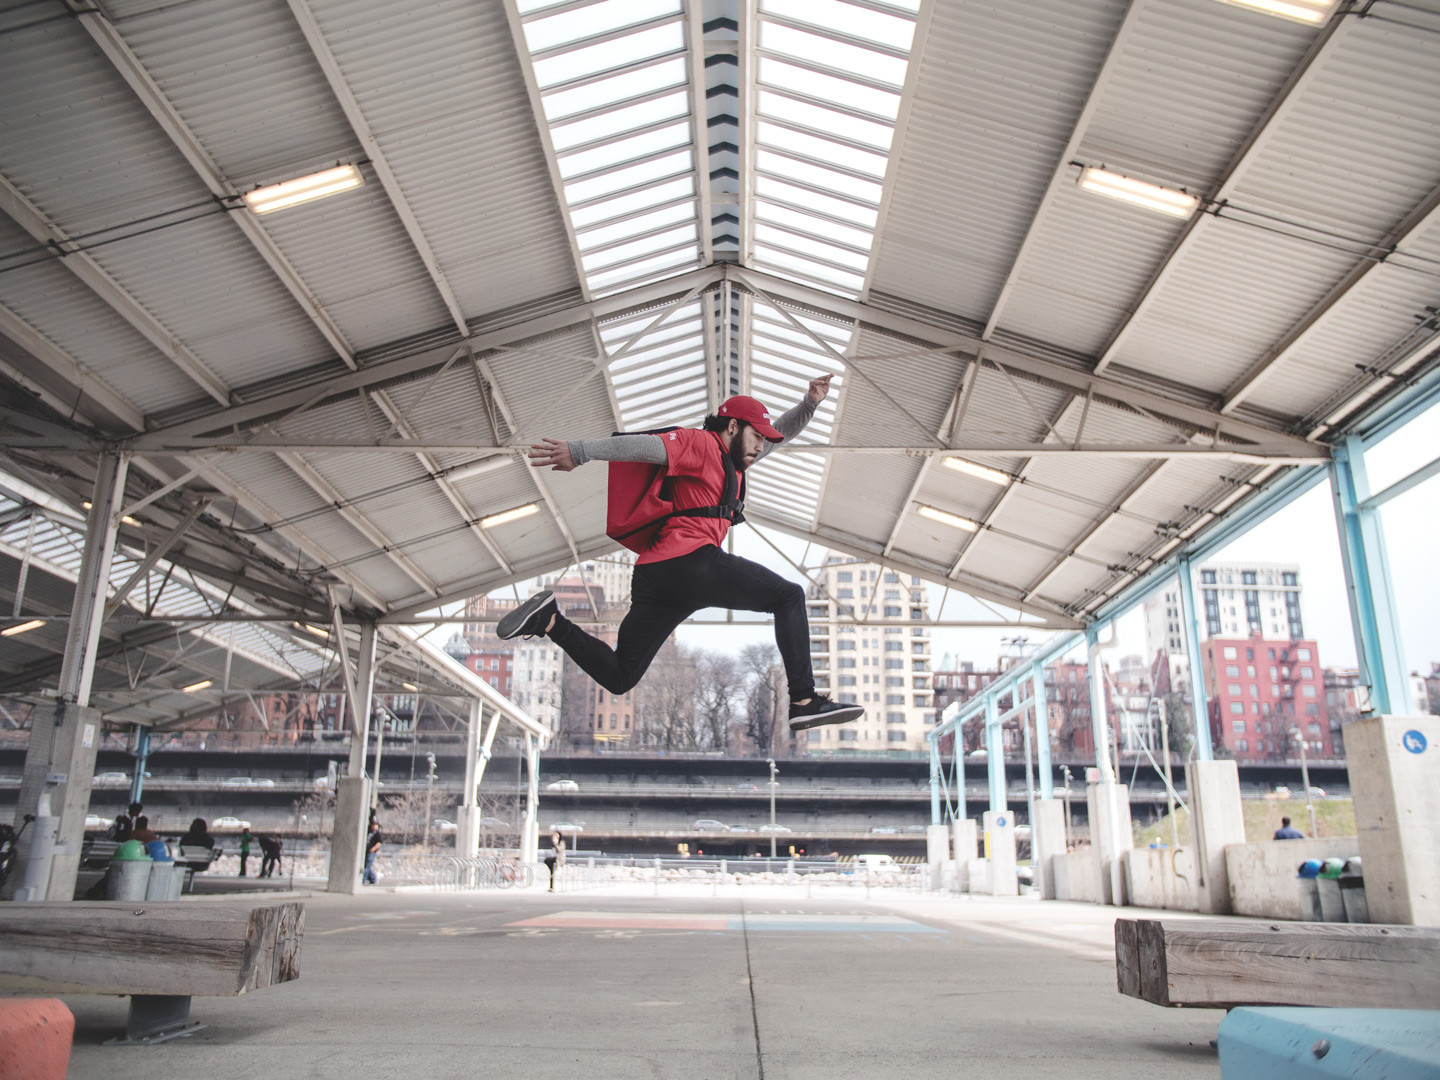 Mike-Araujo-Parkour-Seamless-Grubhub-New-York-NYC-Steve-Zavitz-NY-Freerunning-Brooklyn